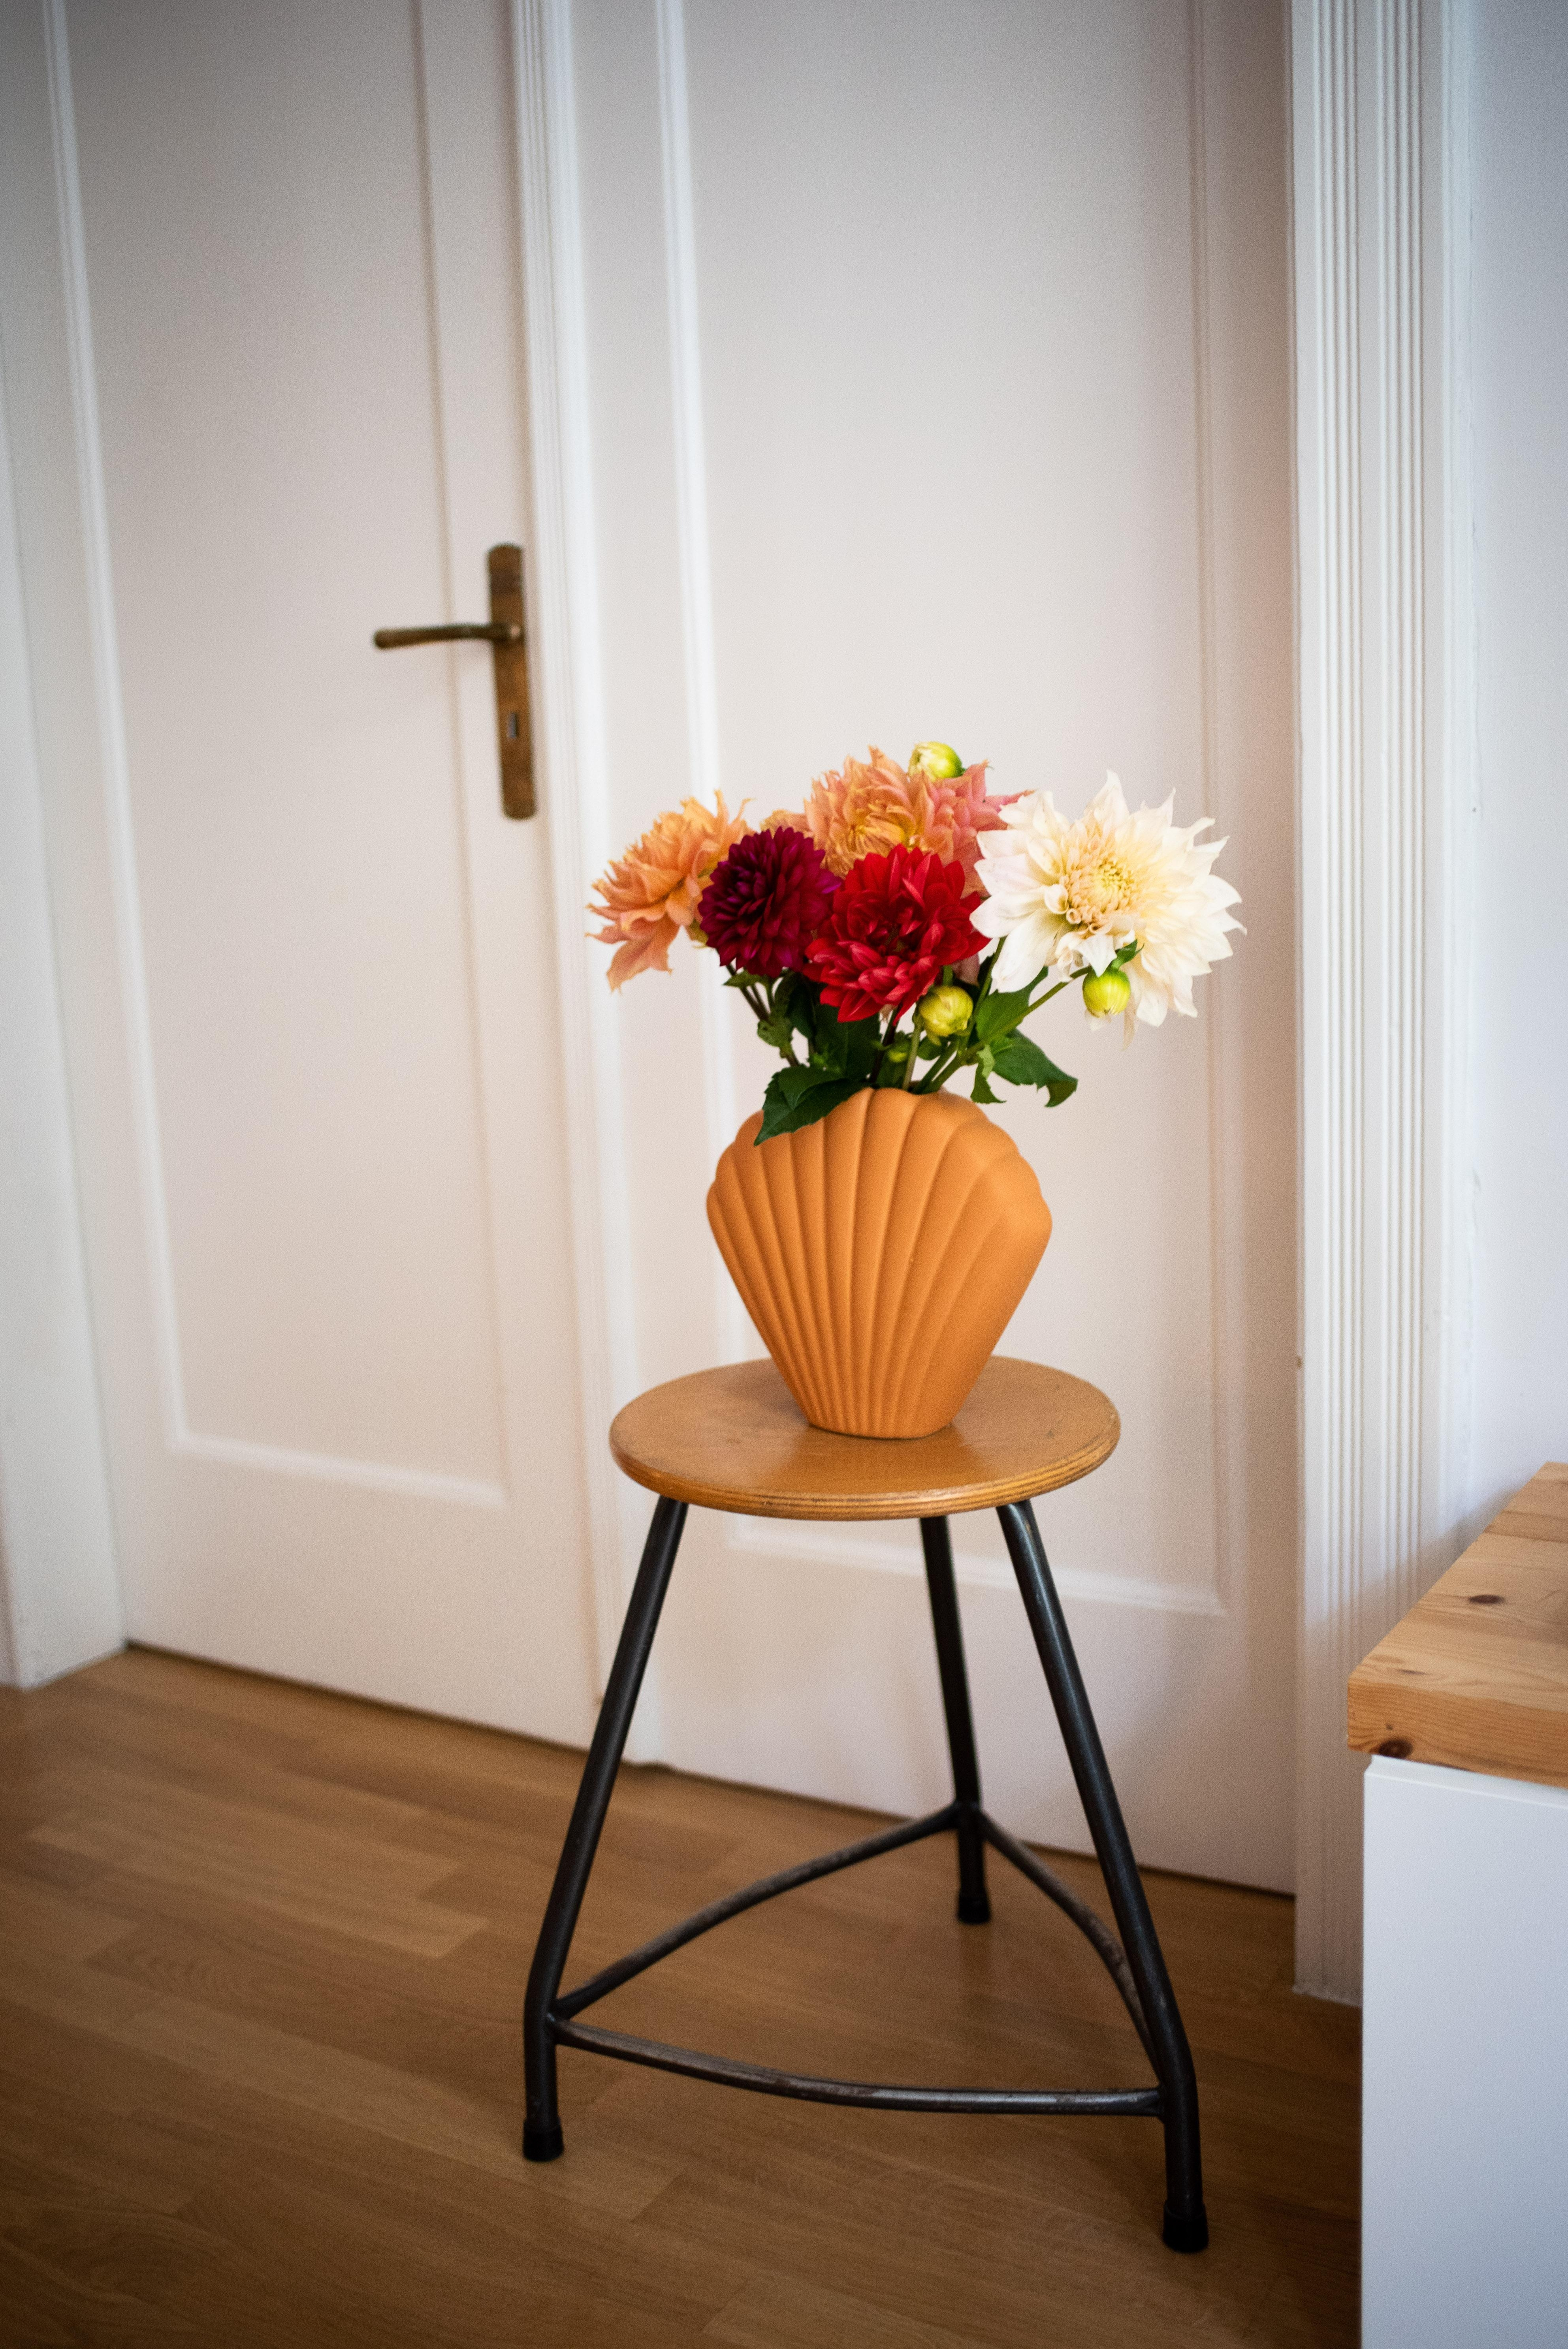 Happy Friday #freshflowerfriday #vase #deko #vintage #vintagehocker #slowliving #wohnzimmer